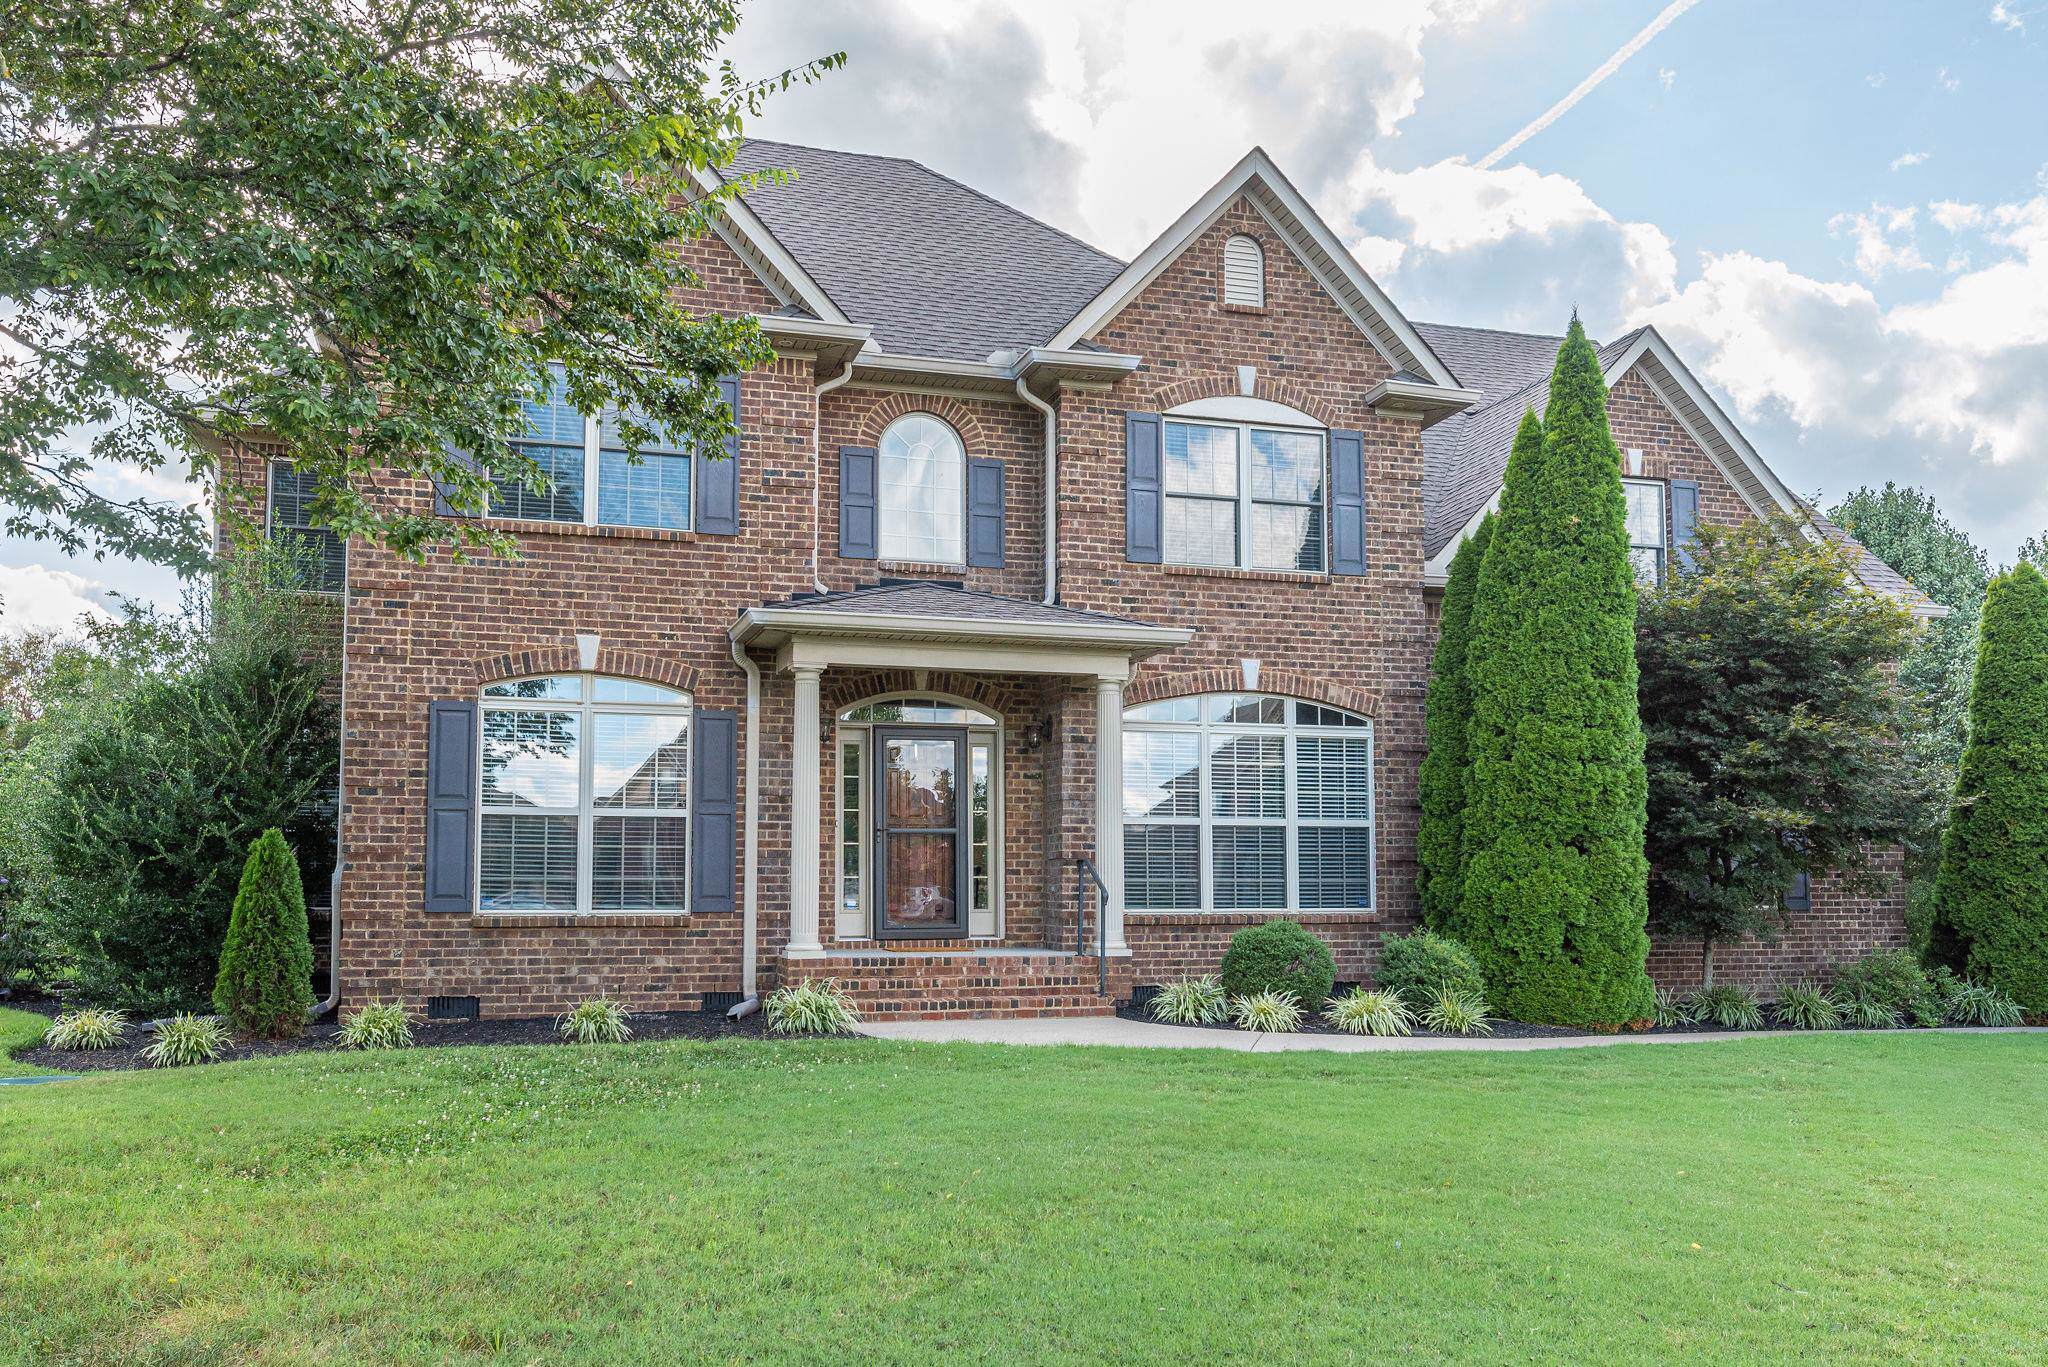 7023 Citation Ln, Murfreesboro, TN 37129 (MLS #RTC2062892) :: Village Real Estate